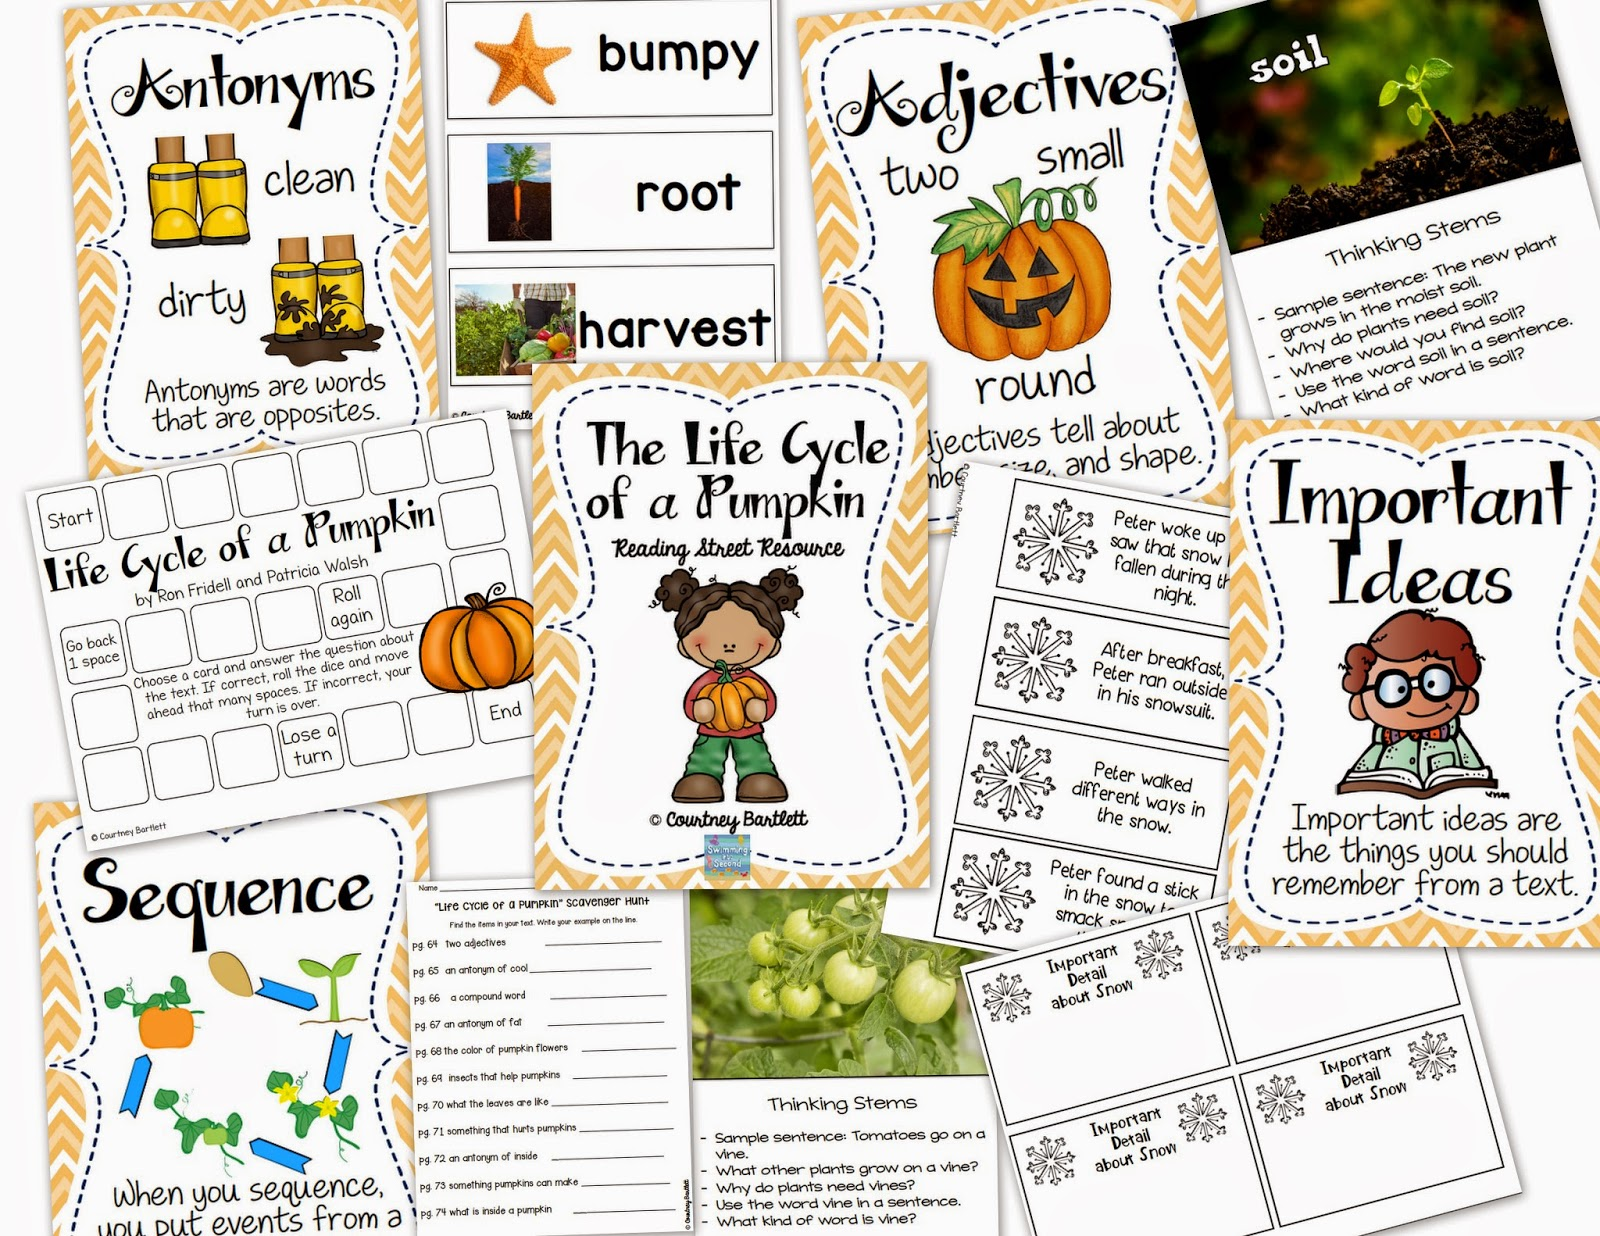 http://www.teacherspayteachers.com/Product/Life-Cycle-of-a-Pumpkin-Reading-Street-Resource-1620062